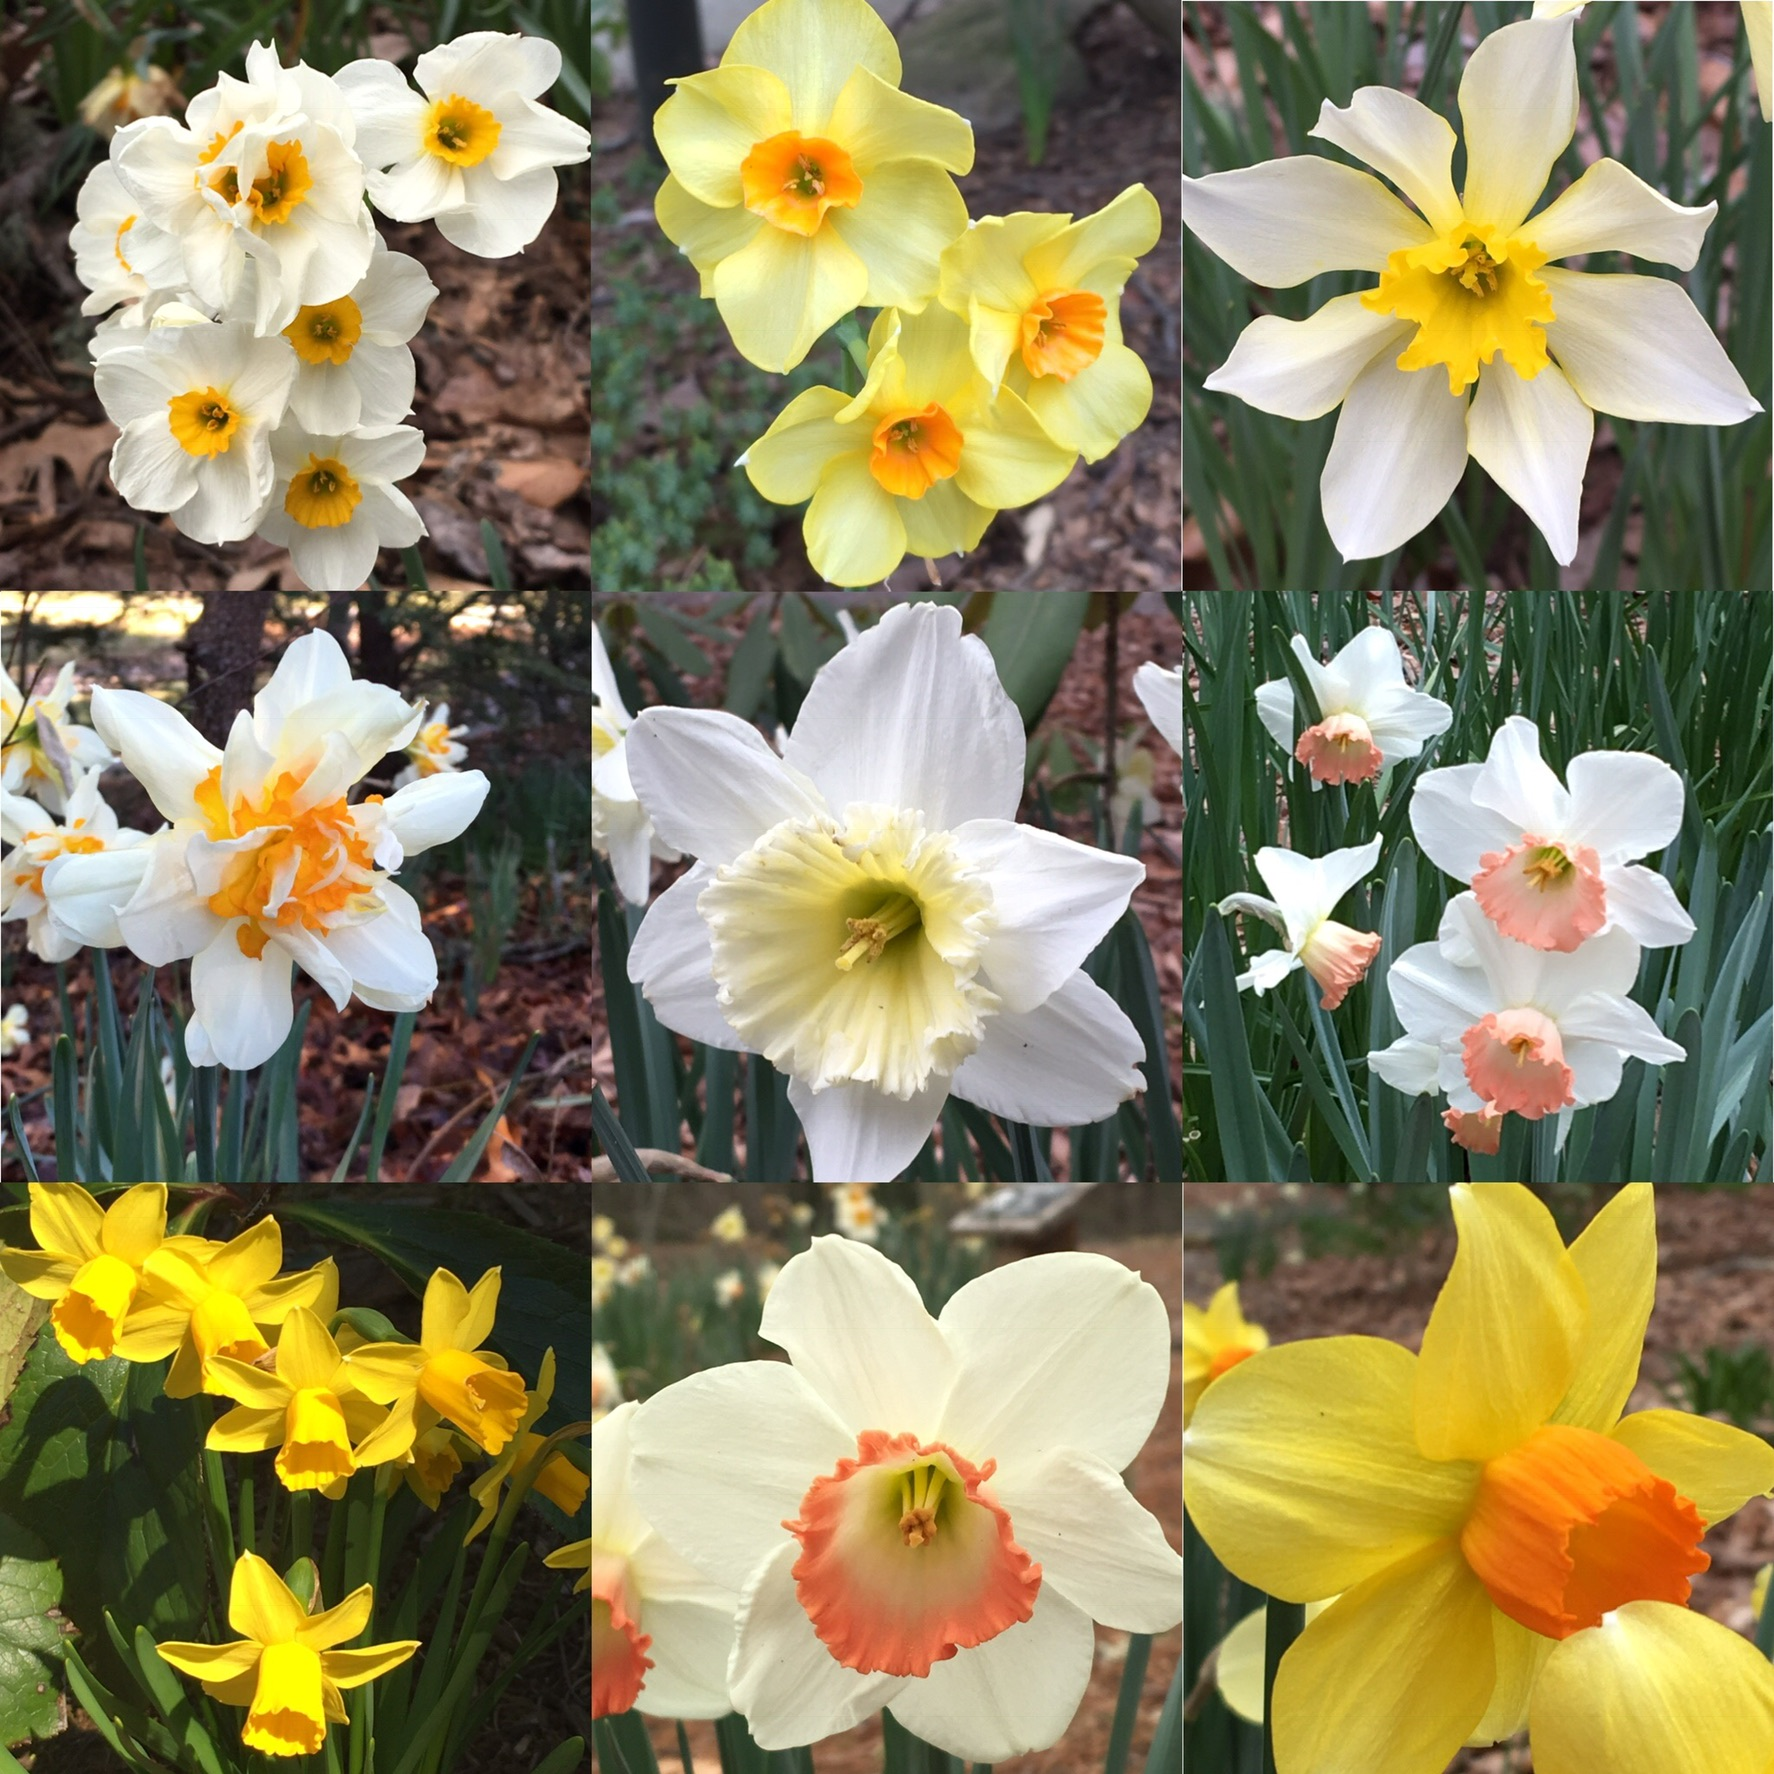 There are so many daffodils (or Narcissus) that you can enjoy their blooms from February into April. Multiple colors, mulitple blooms on one stem, and one that even looks like scrambled eggs. (Can you guess which one?)